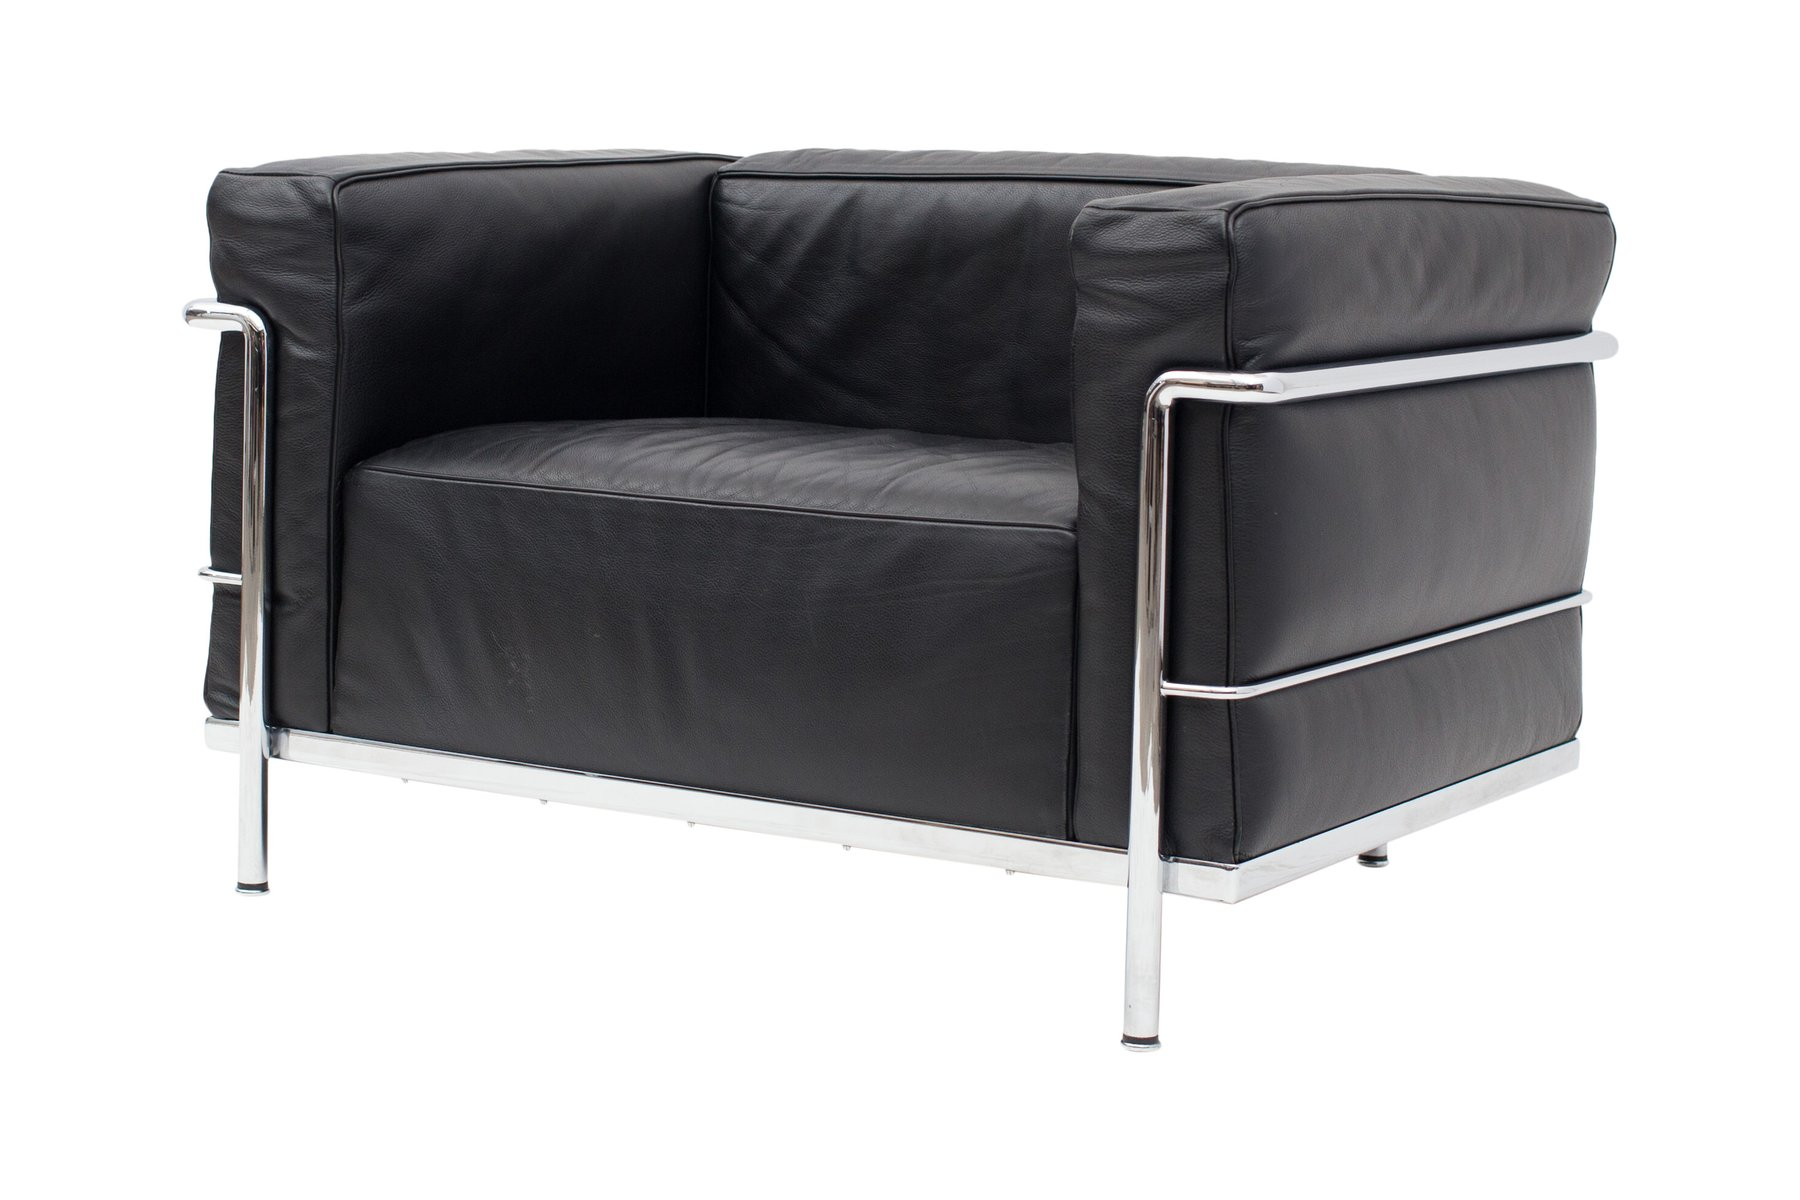 schwarze lc3 poltrona sessel von le corbusier f r cassina 1965 2er set bei pamono kaufen. Black Bedroom Furniture Sets. Home Design Ideas